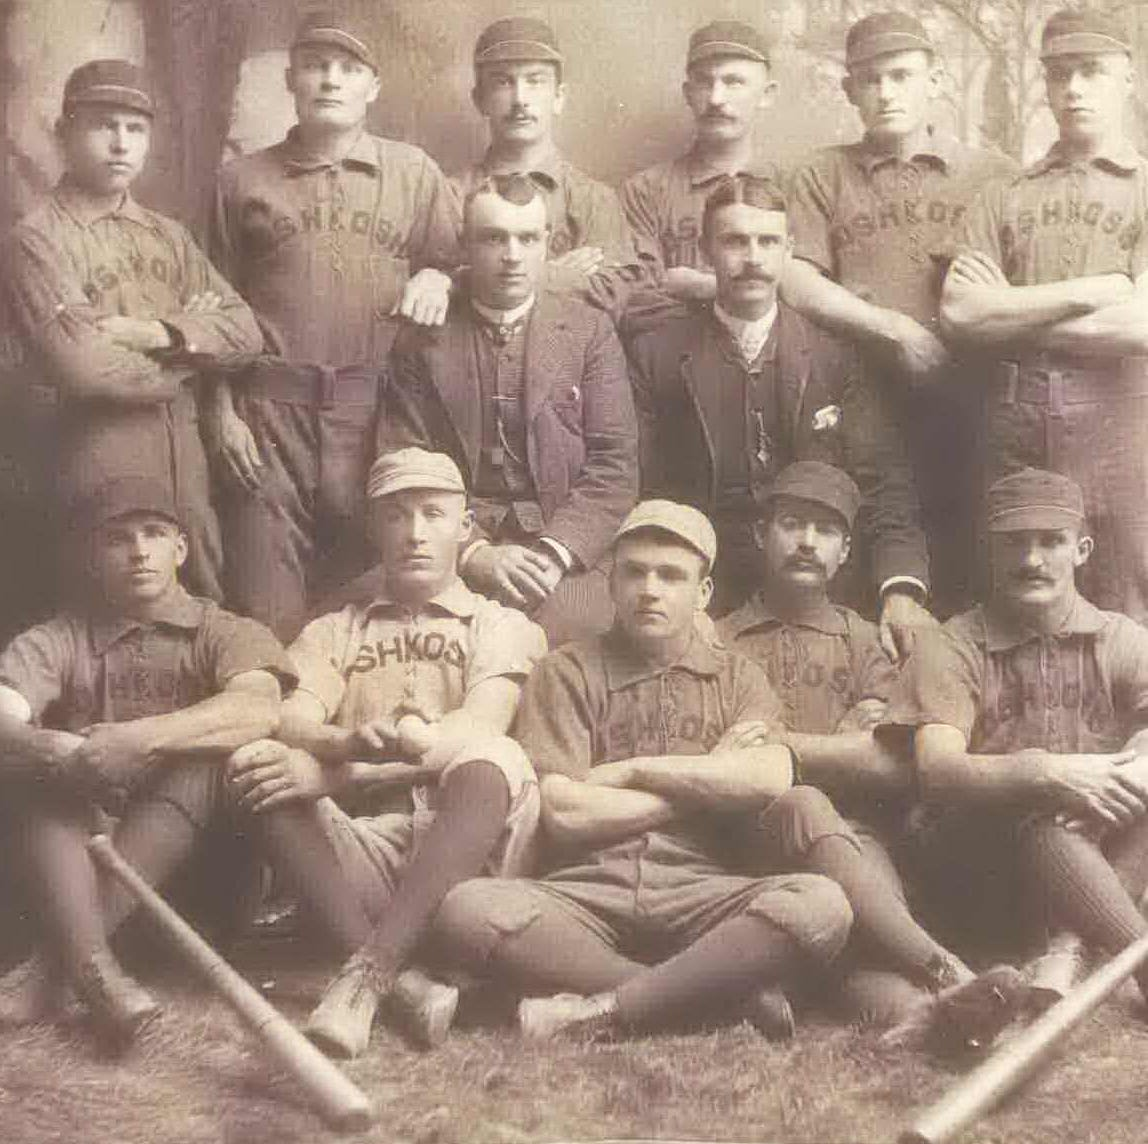 1800s Oshkosh baseball player Hoy was deaf and, some say, invented umpire hand signals